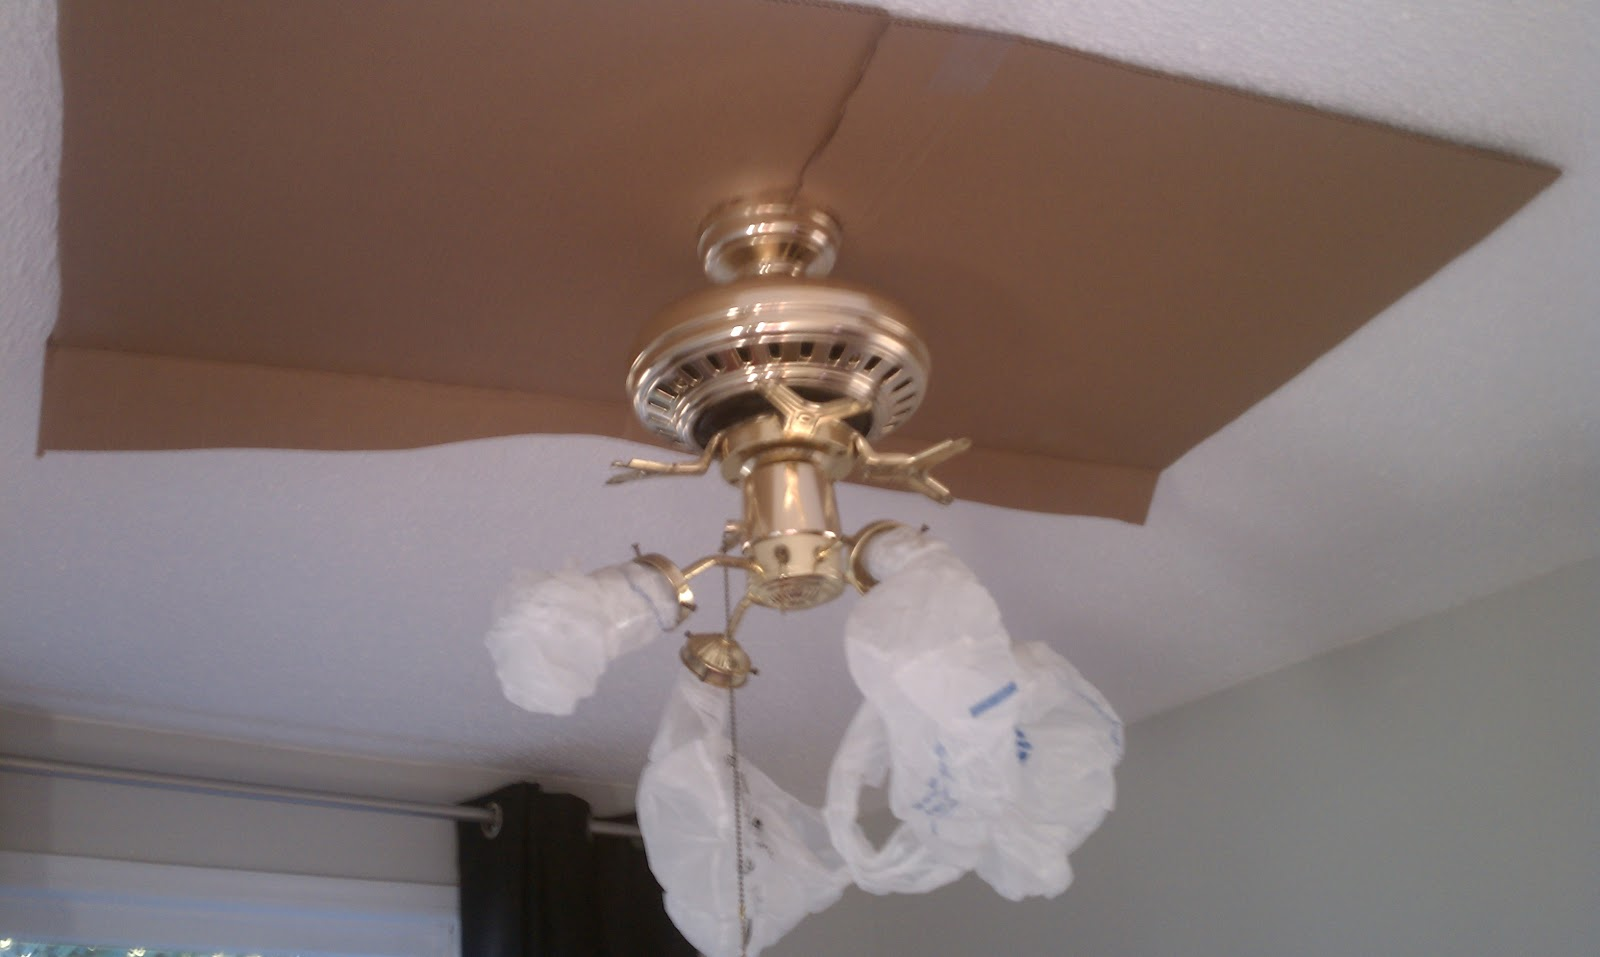 Diy Ceiling Fan : Nadia s diy projects ceiling fan makeover